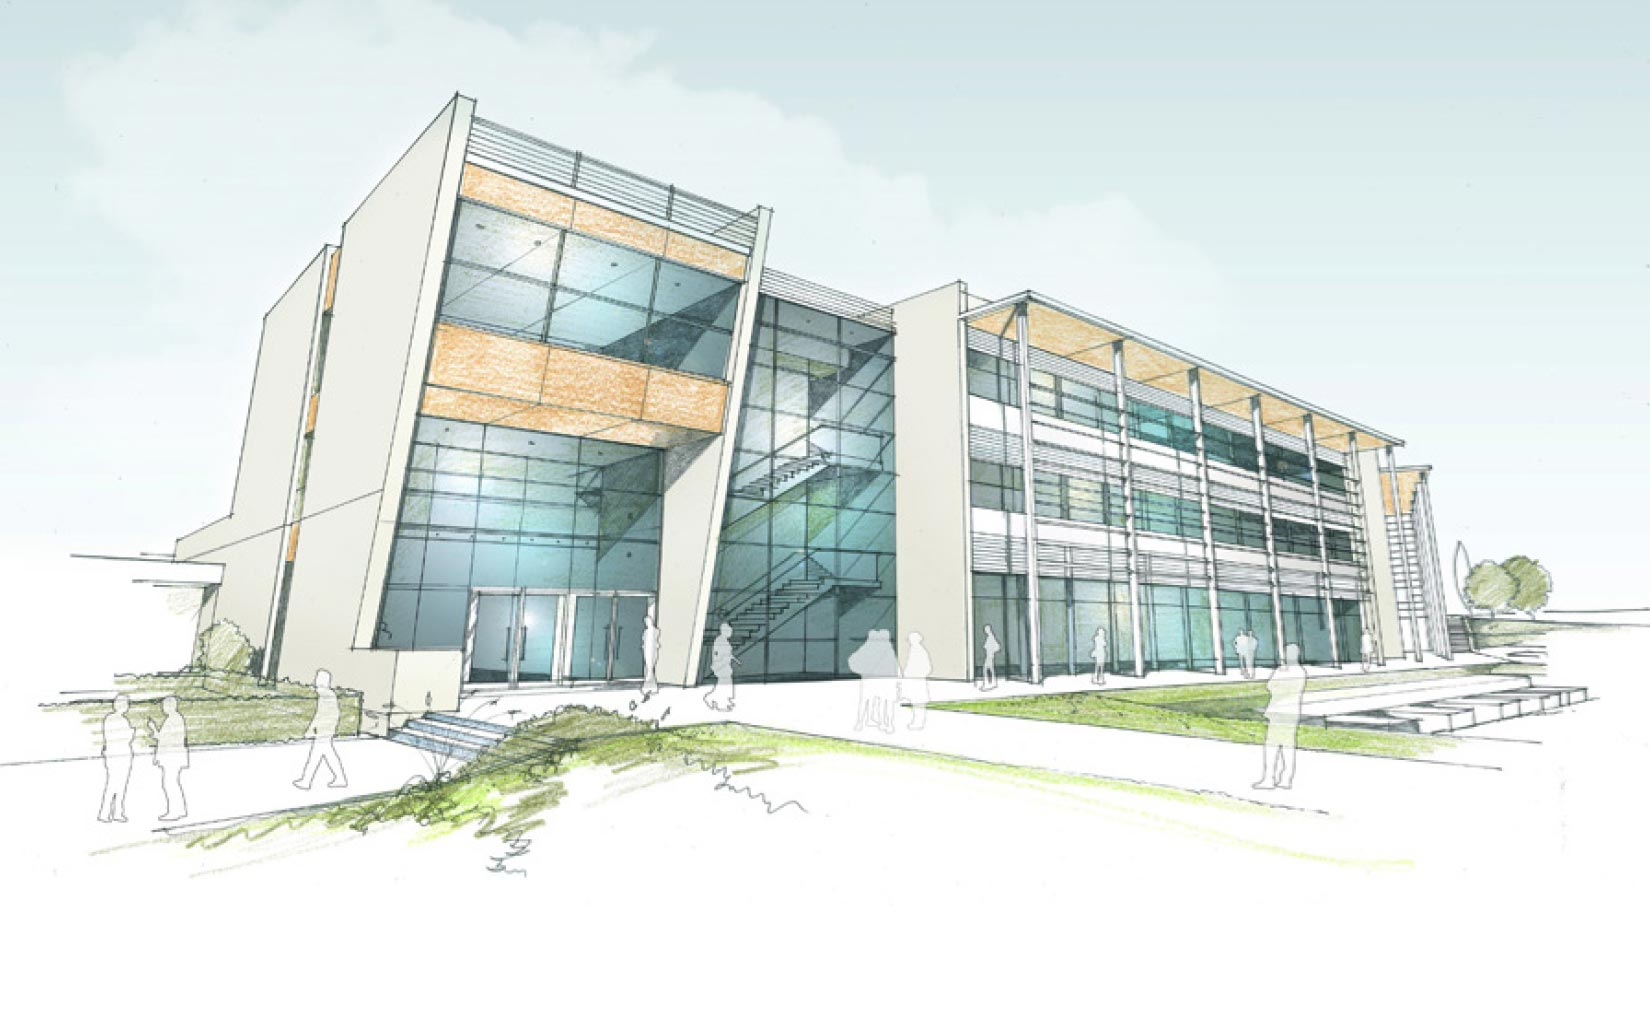 Blackpool Sixth Form College, concept sketch